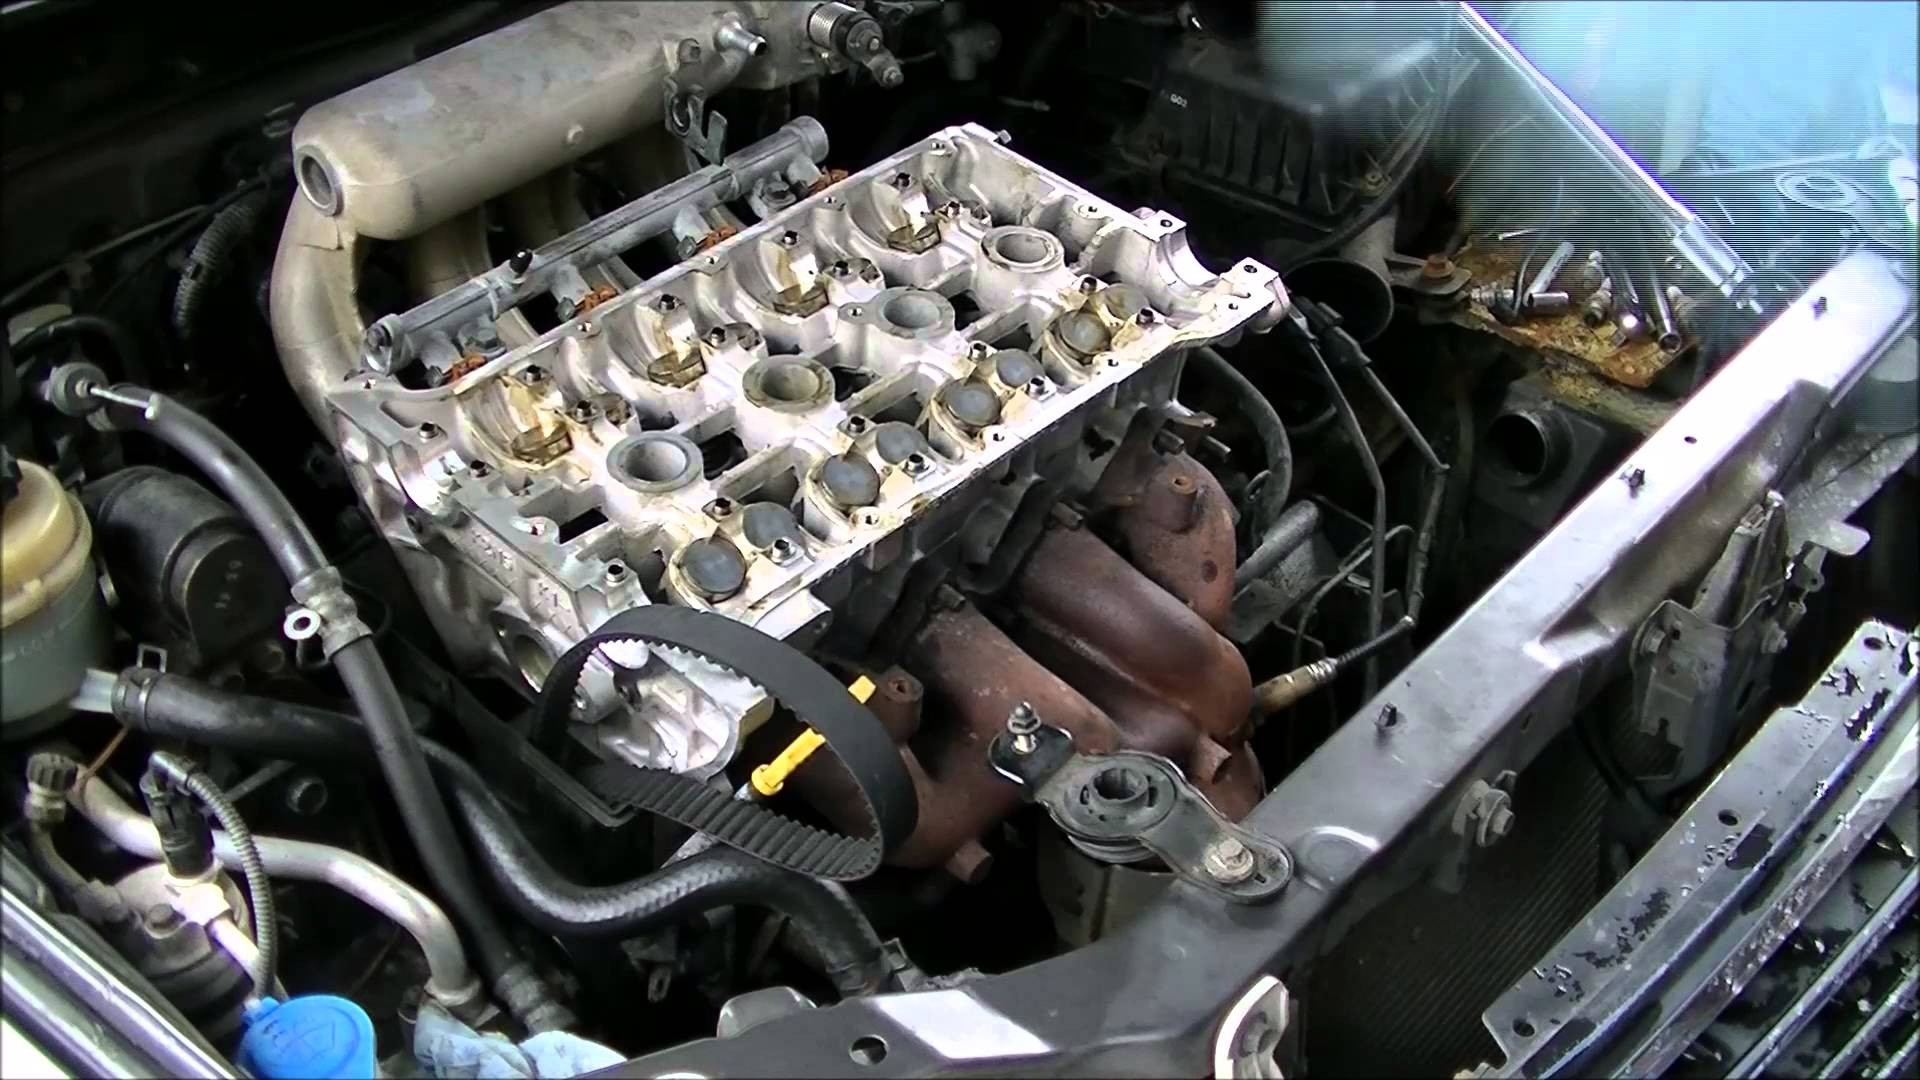 2002 Kia Spectra Engine Diagram My Wiring 2009 Head Replacement Of